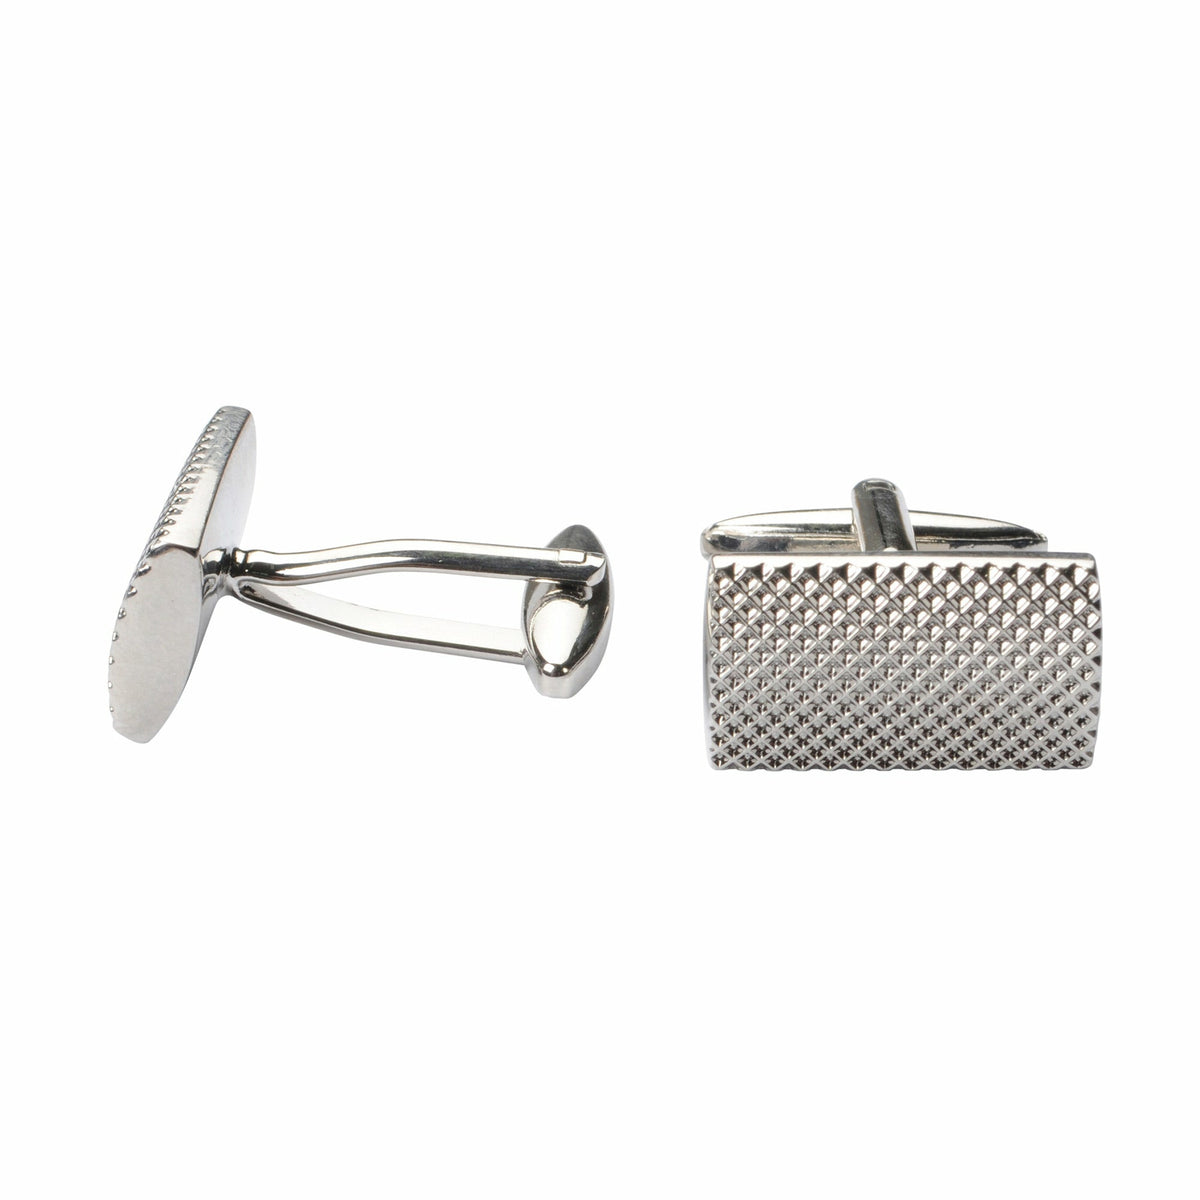 Bennett Signature Cufflinks in Silver - Ron Bennett Big Men's Clothing